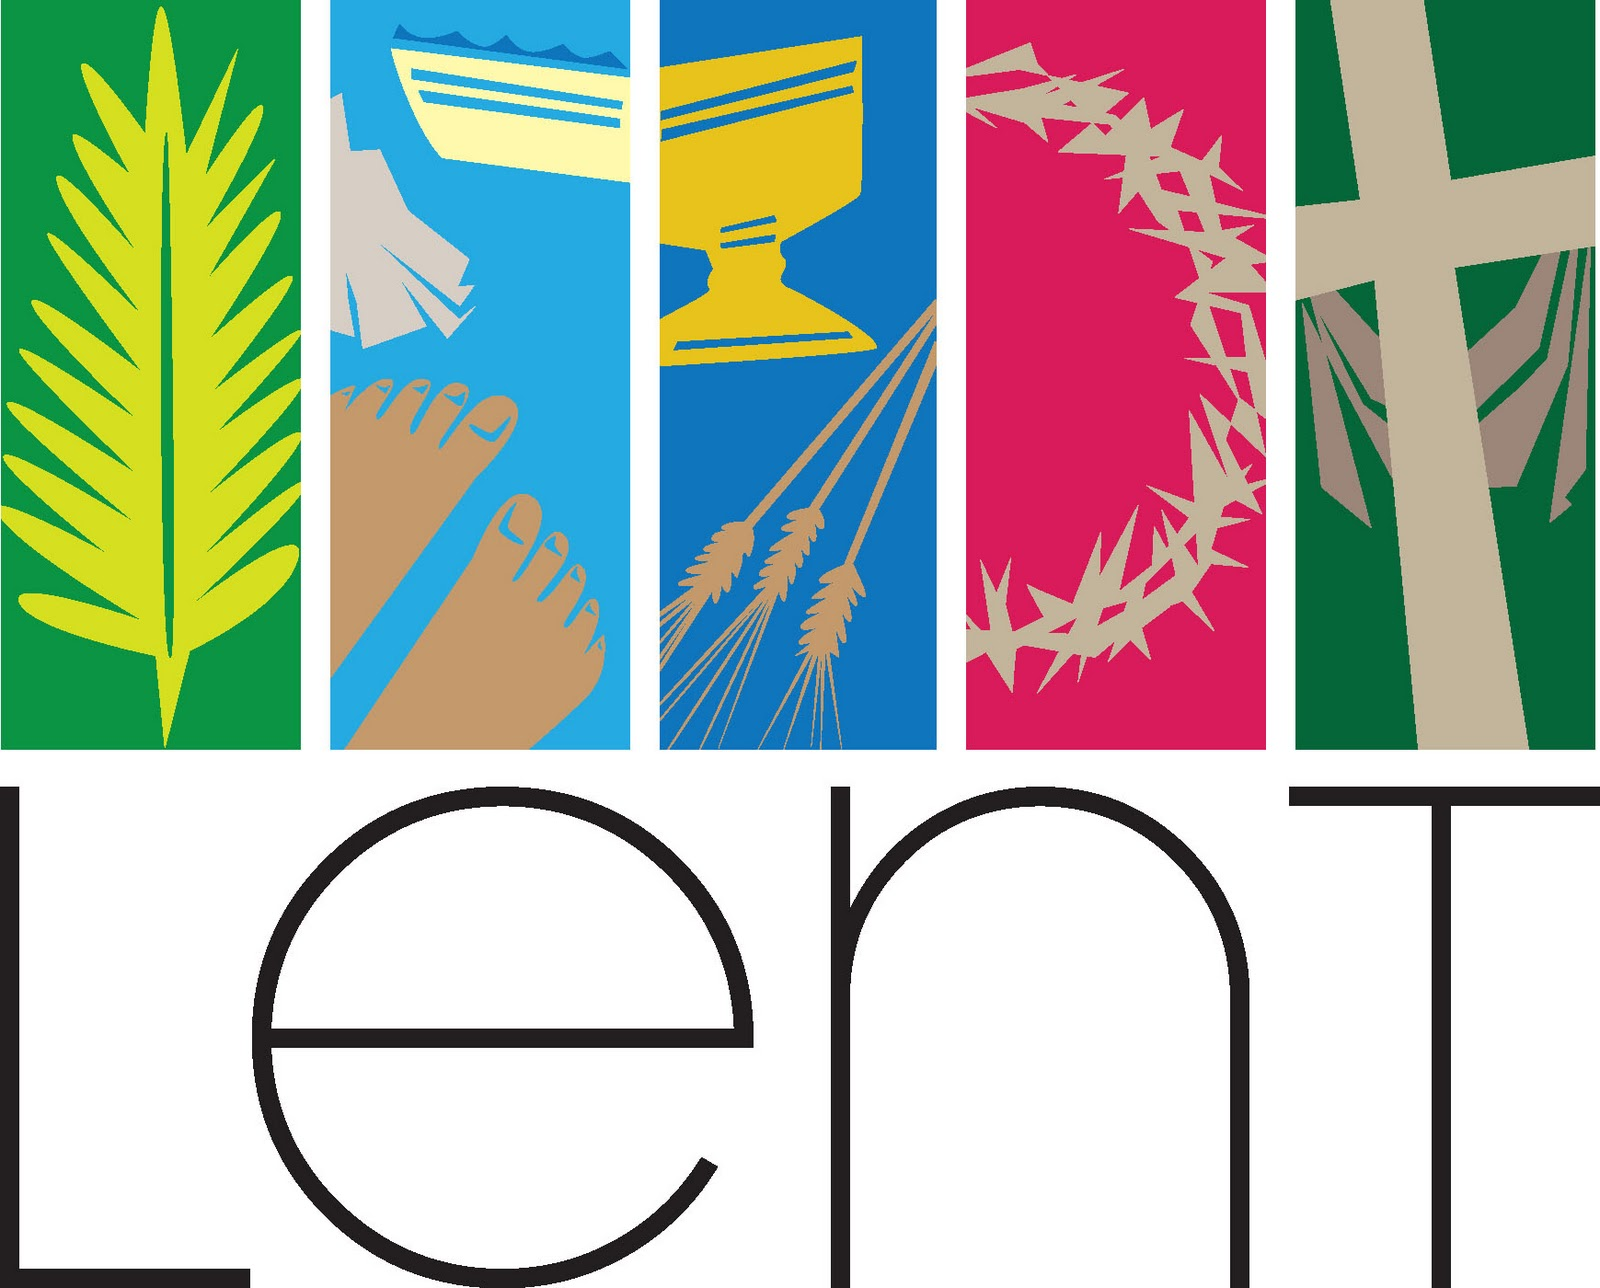 Lent 5c Symbols Of Lent Sheaves Of Wheat